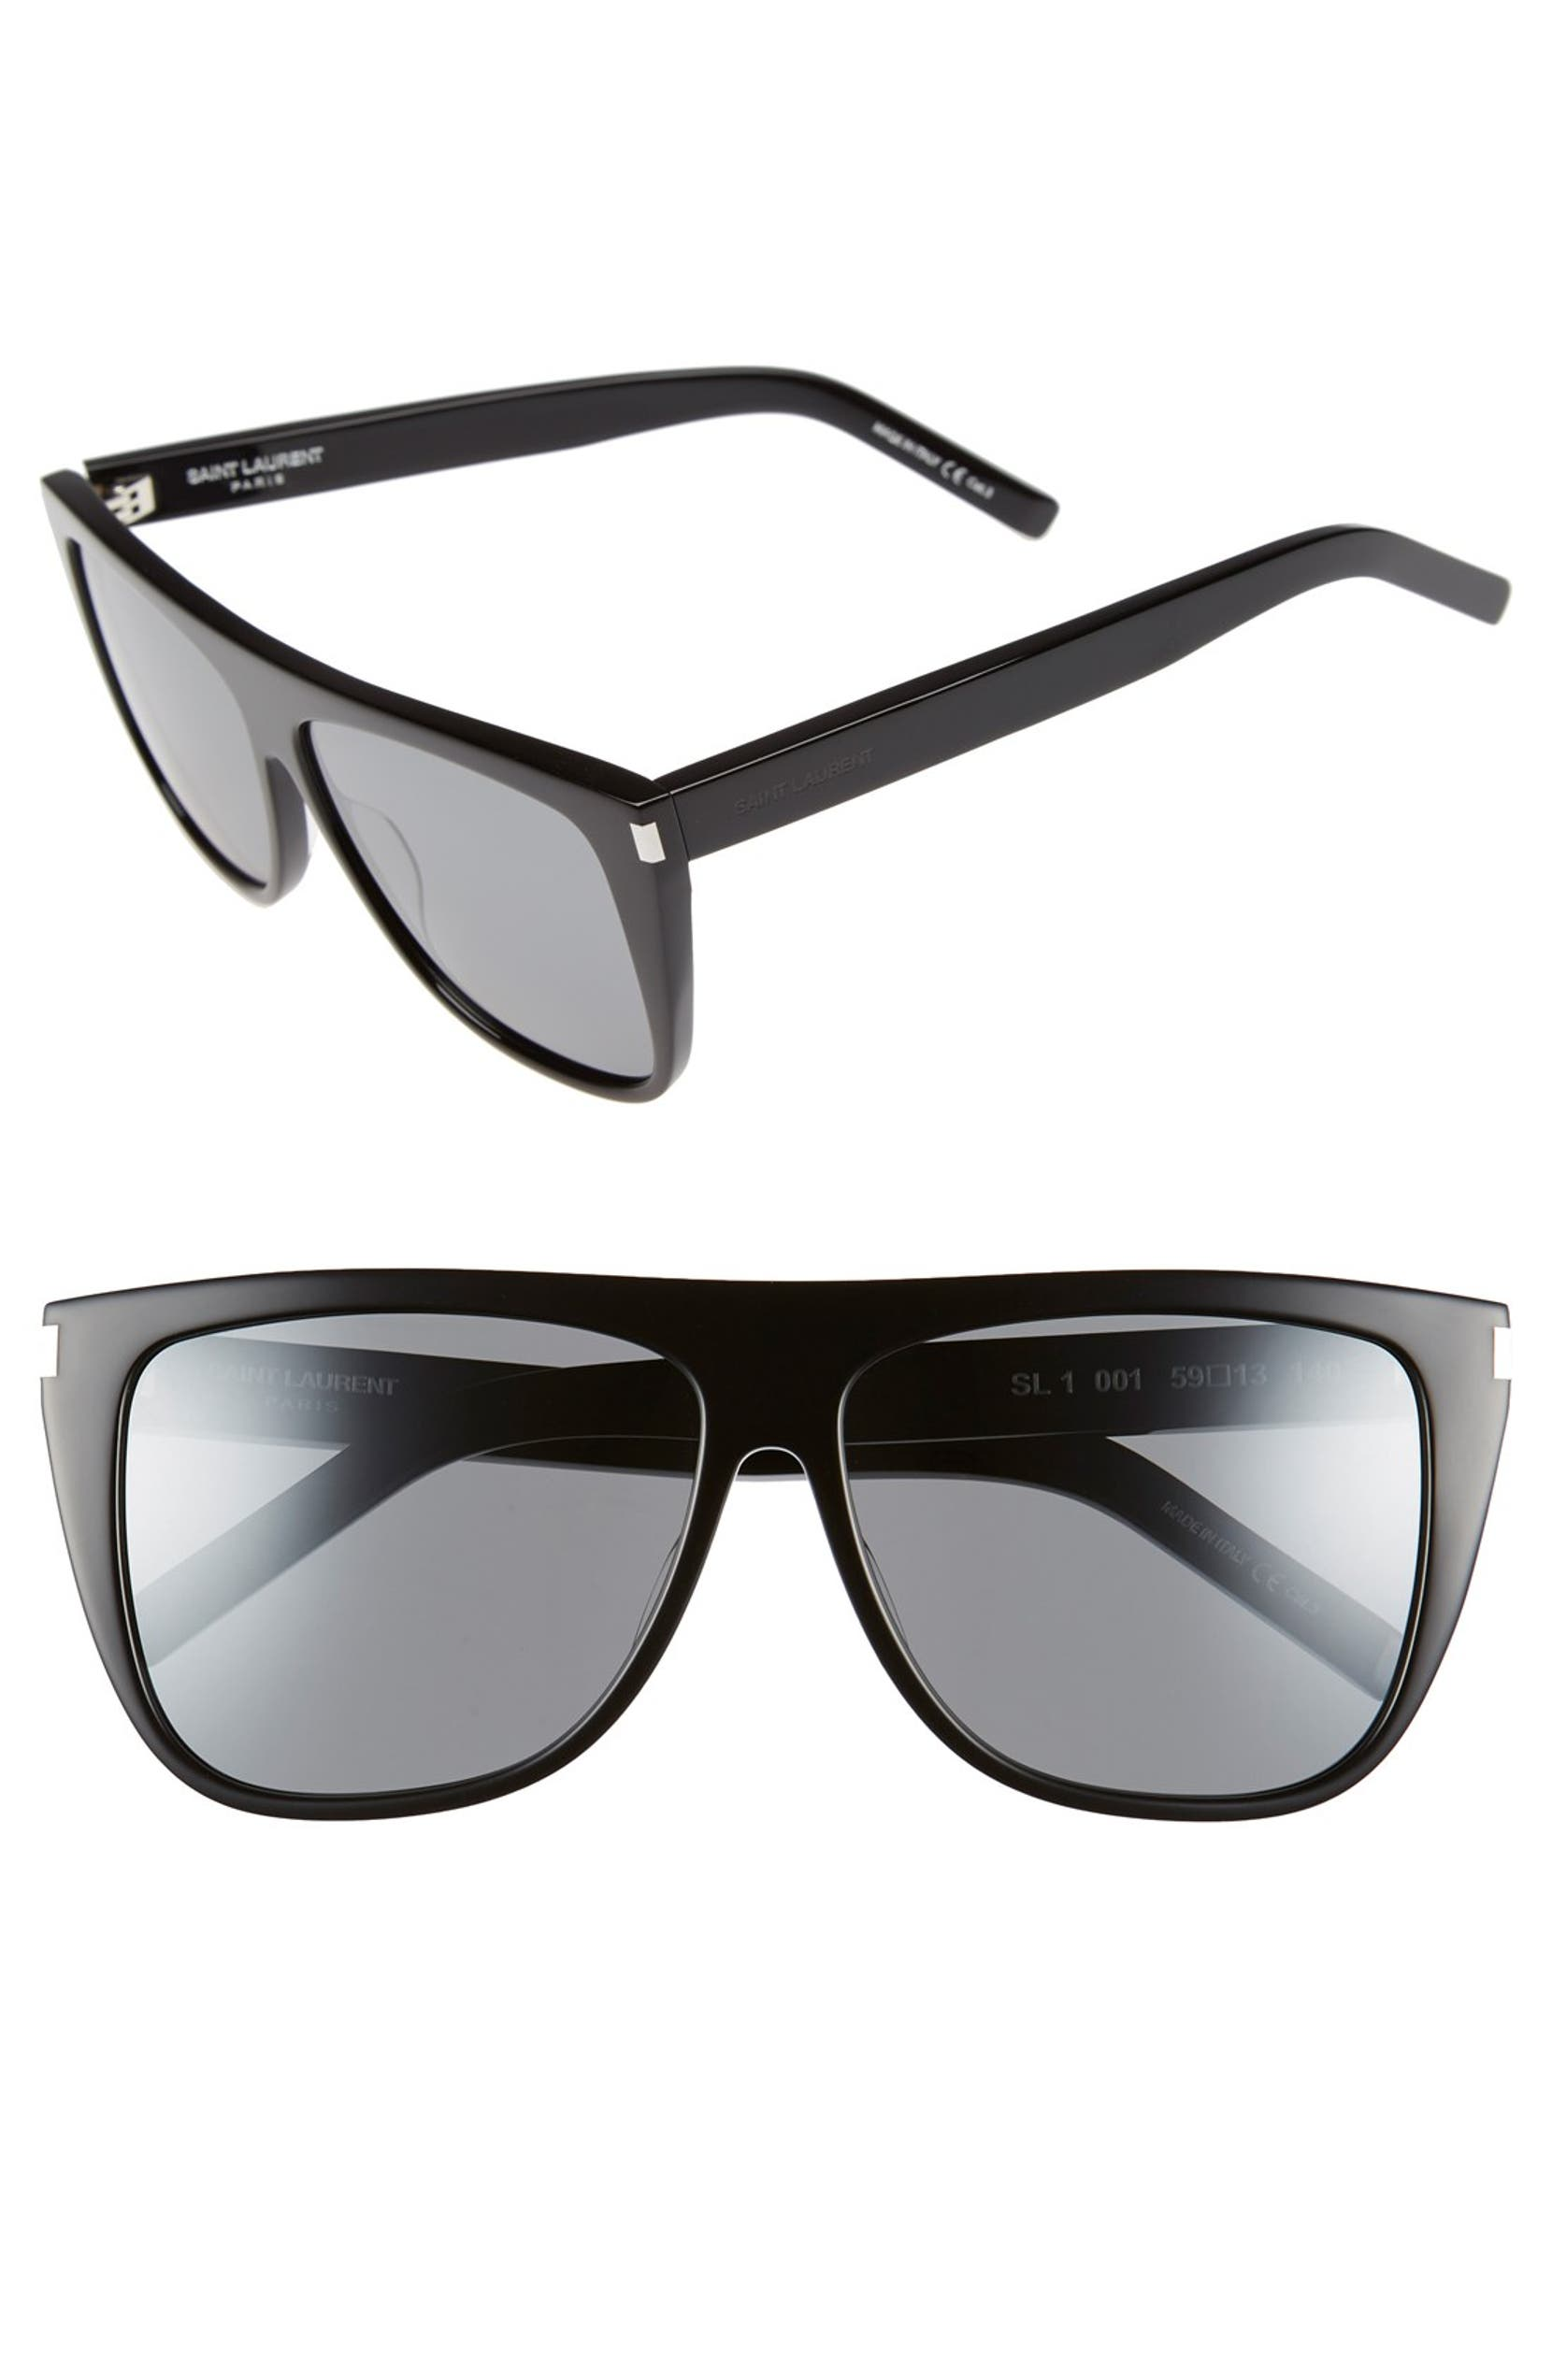 Saint Laurent SL1 59mm Flat Top Sunglasses   Nordstrom 5b92bbdeab9d